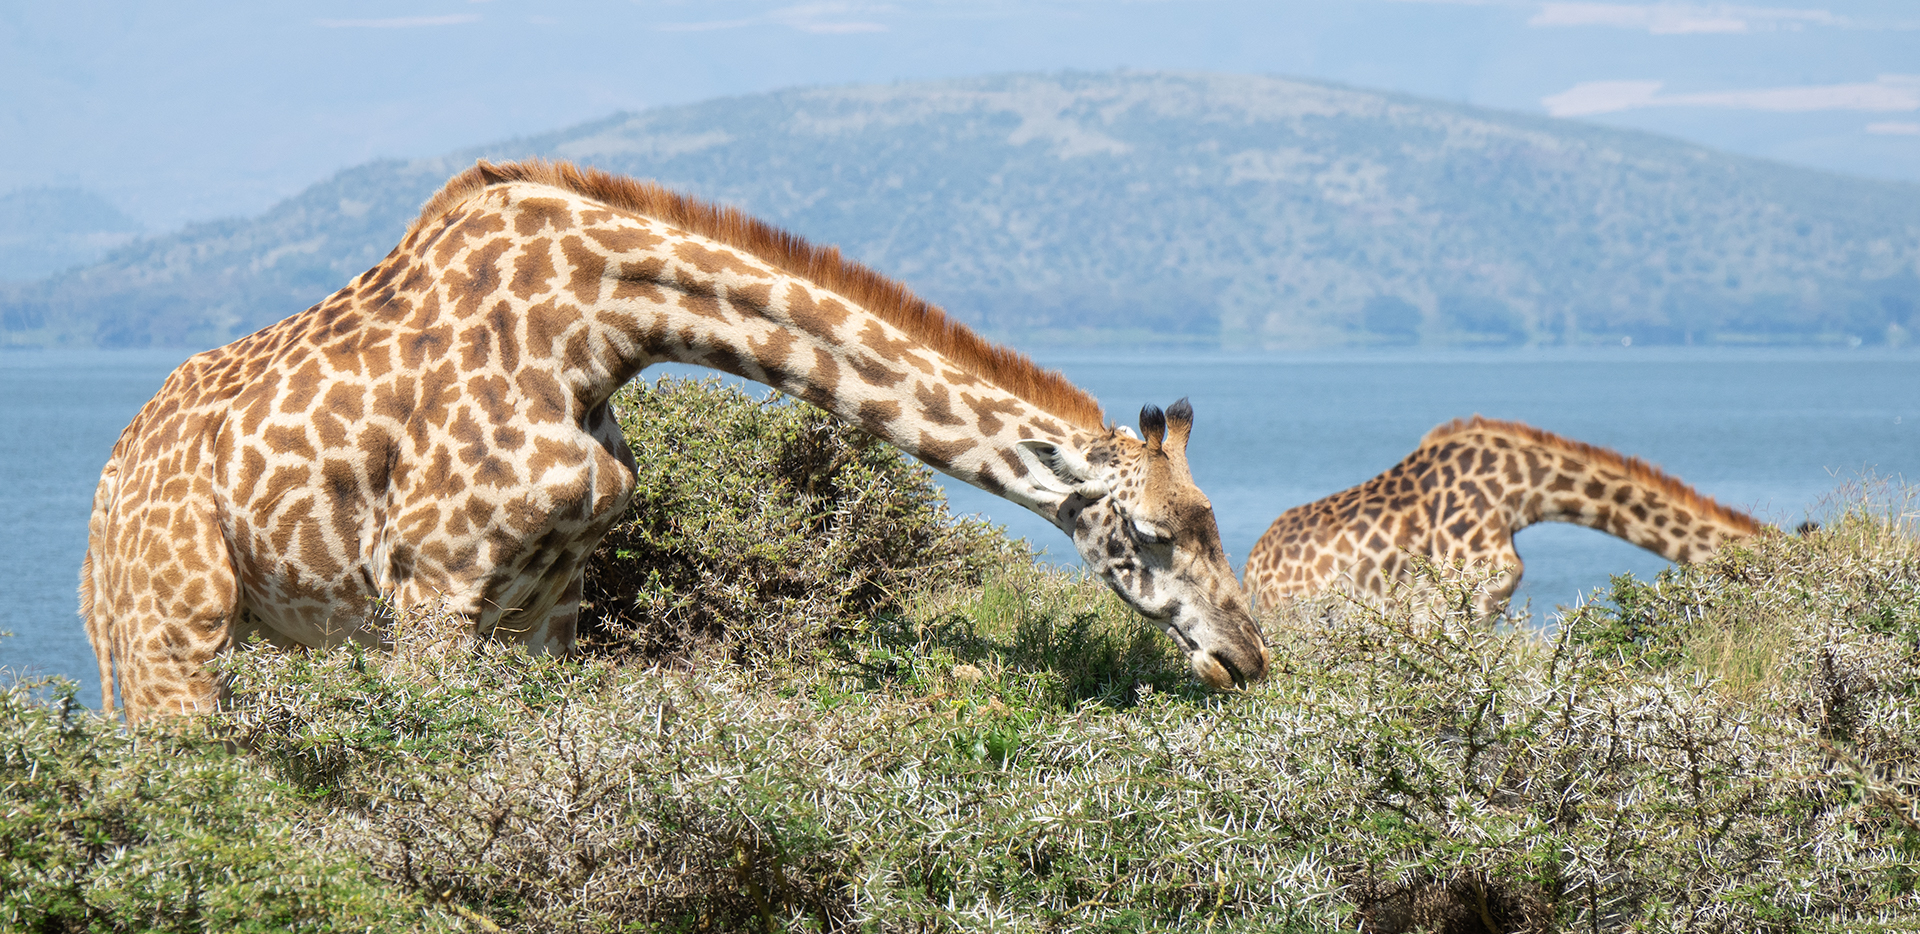 Maasai Giraffes Eating with Lake In The Background